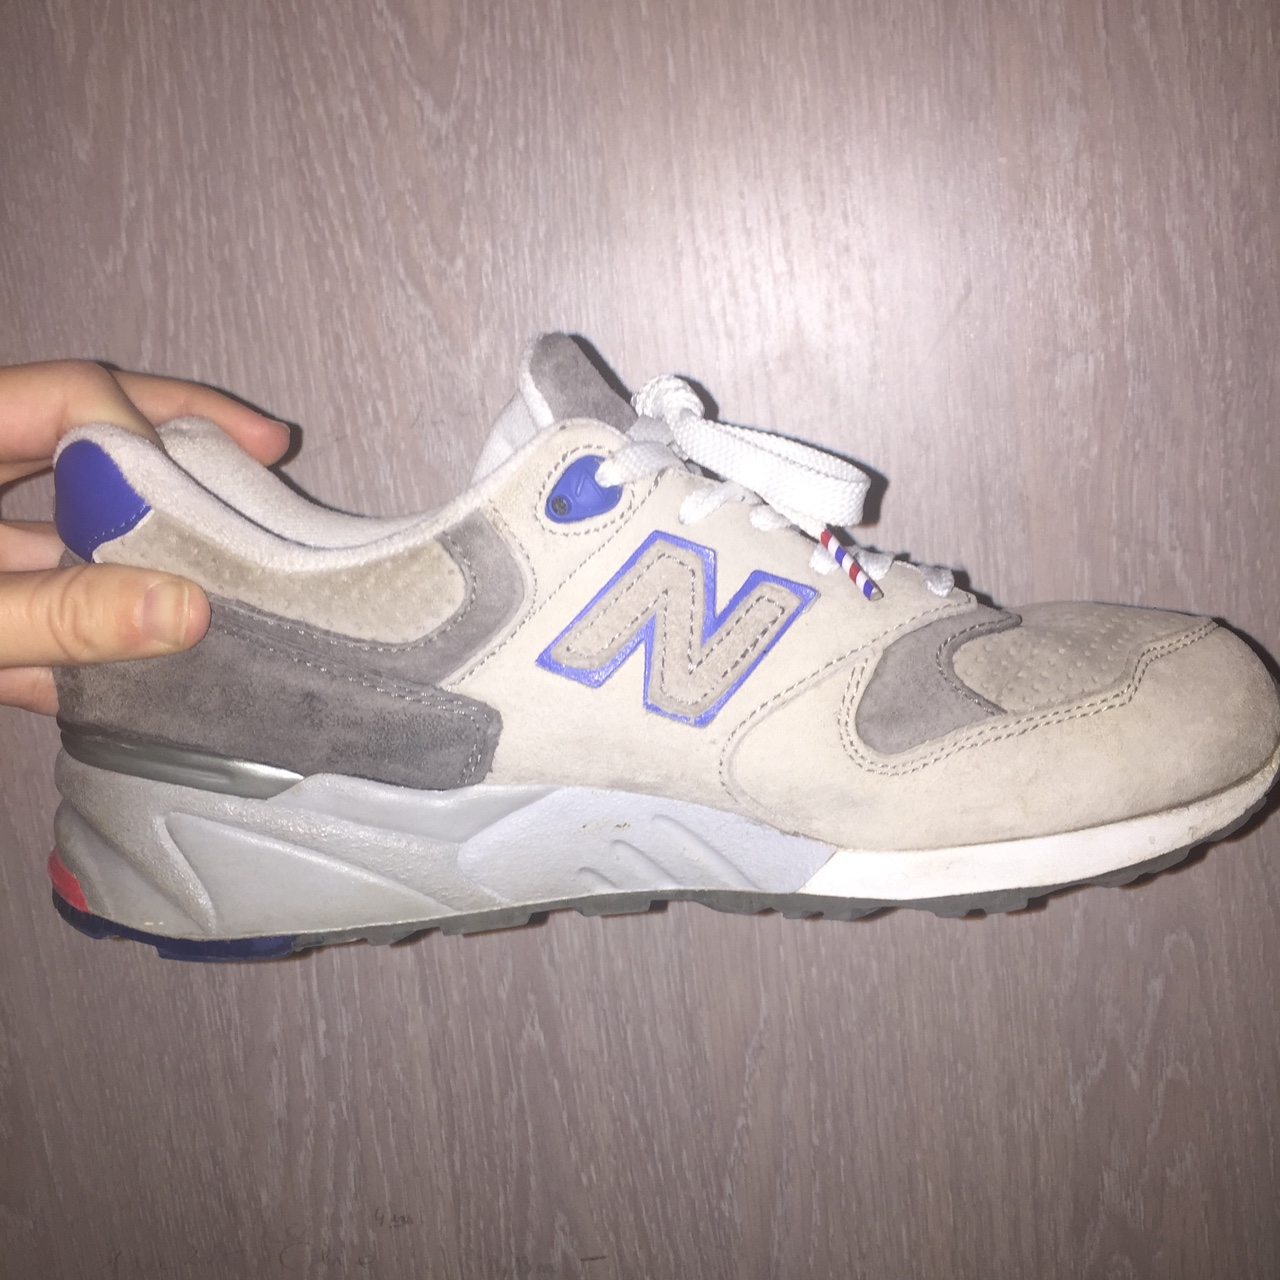 pretty nice 2be63 7fd56 New balance 999, limited edition, almost new ... - Depop